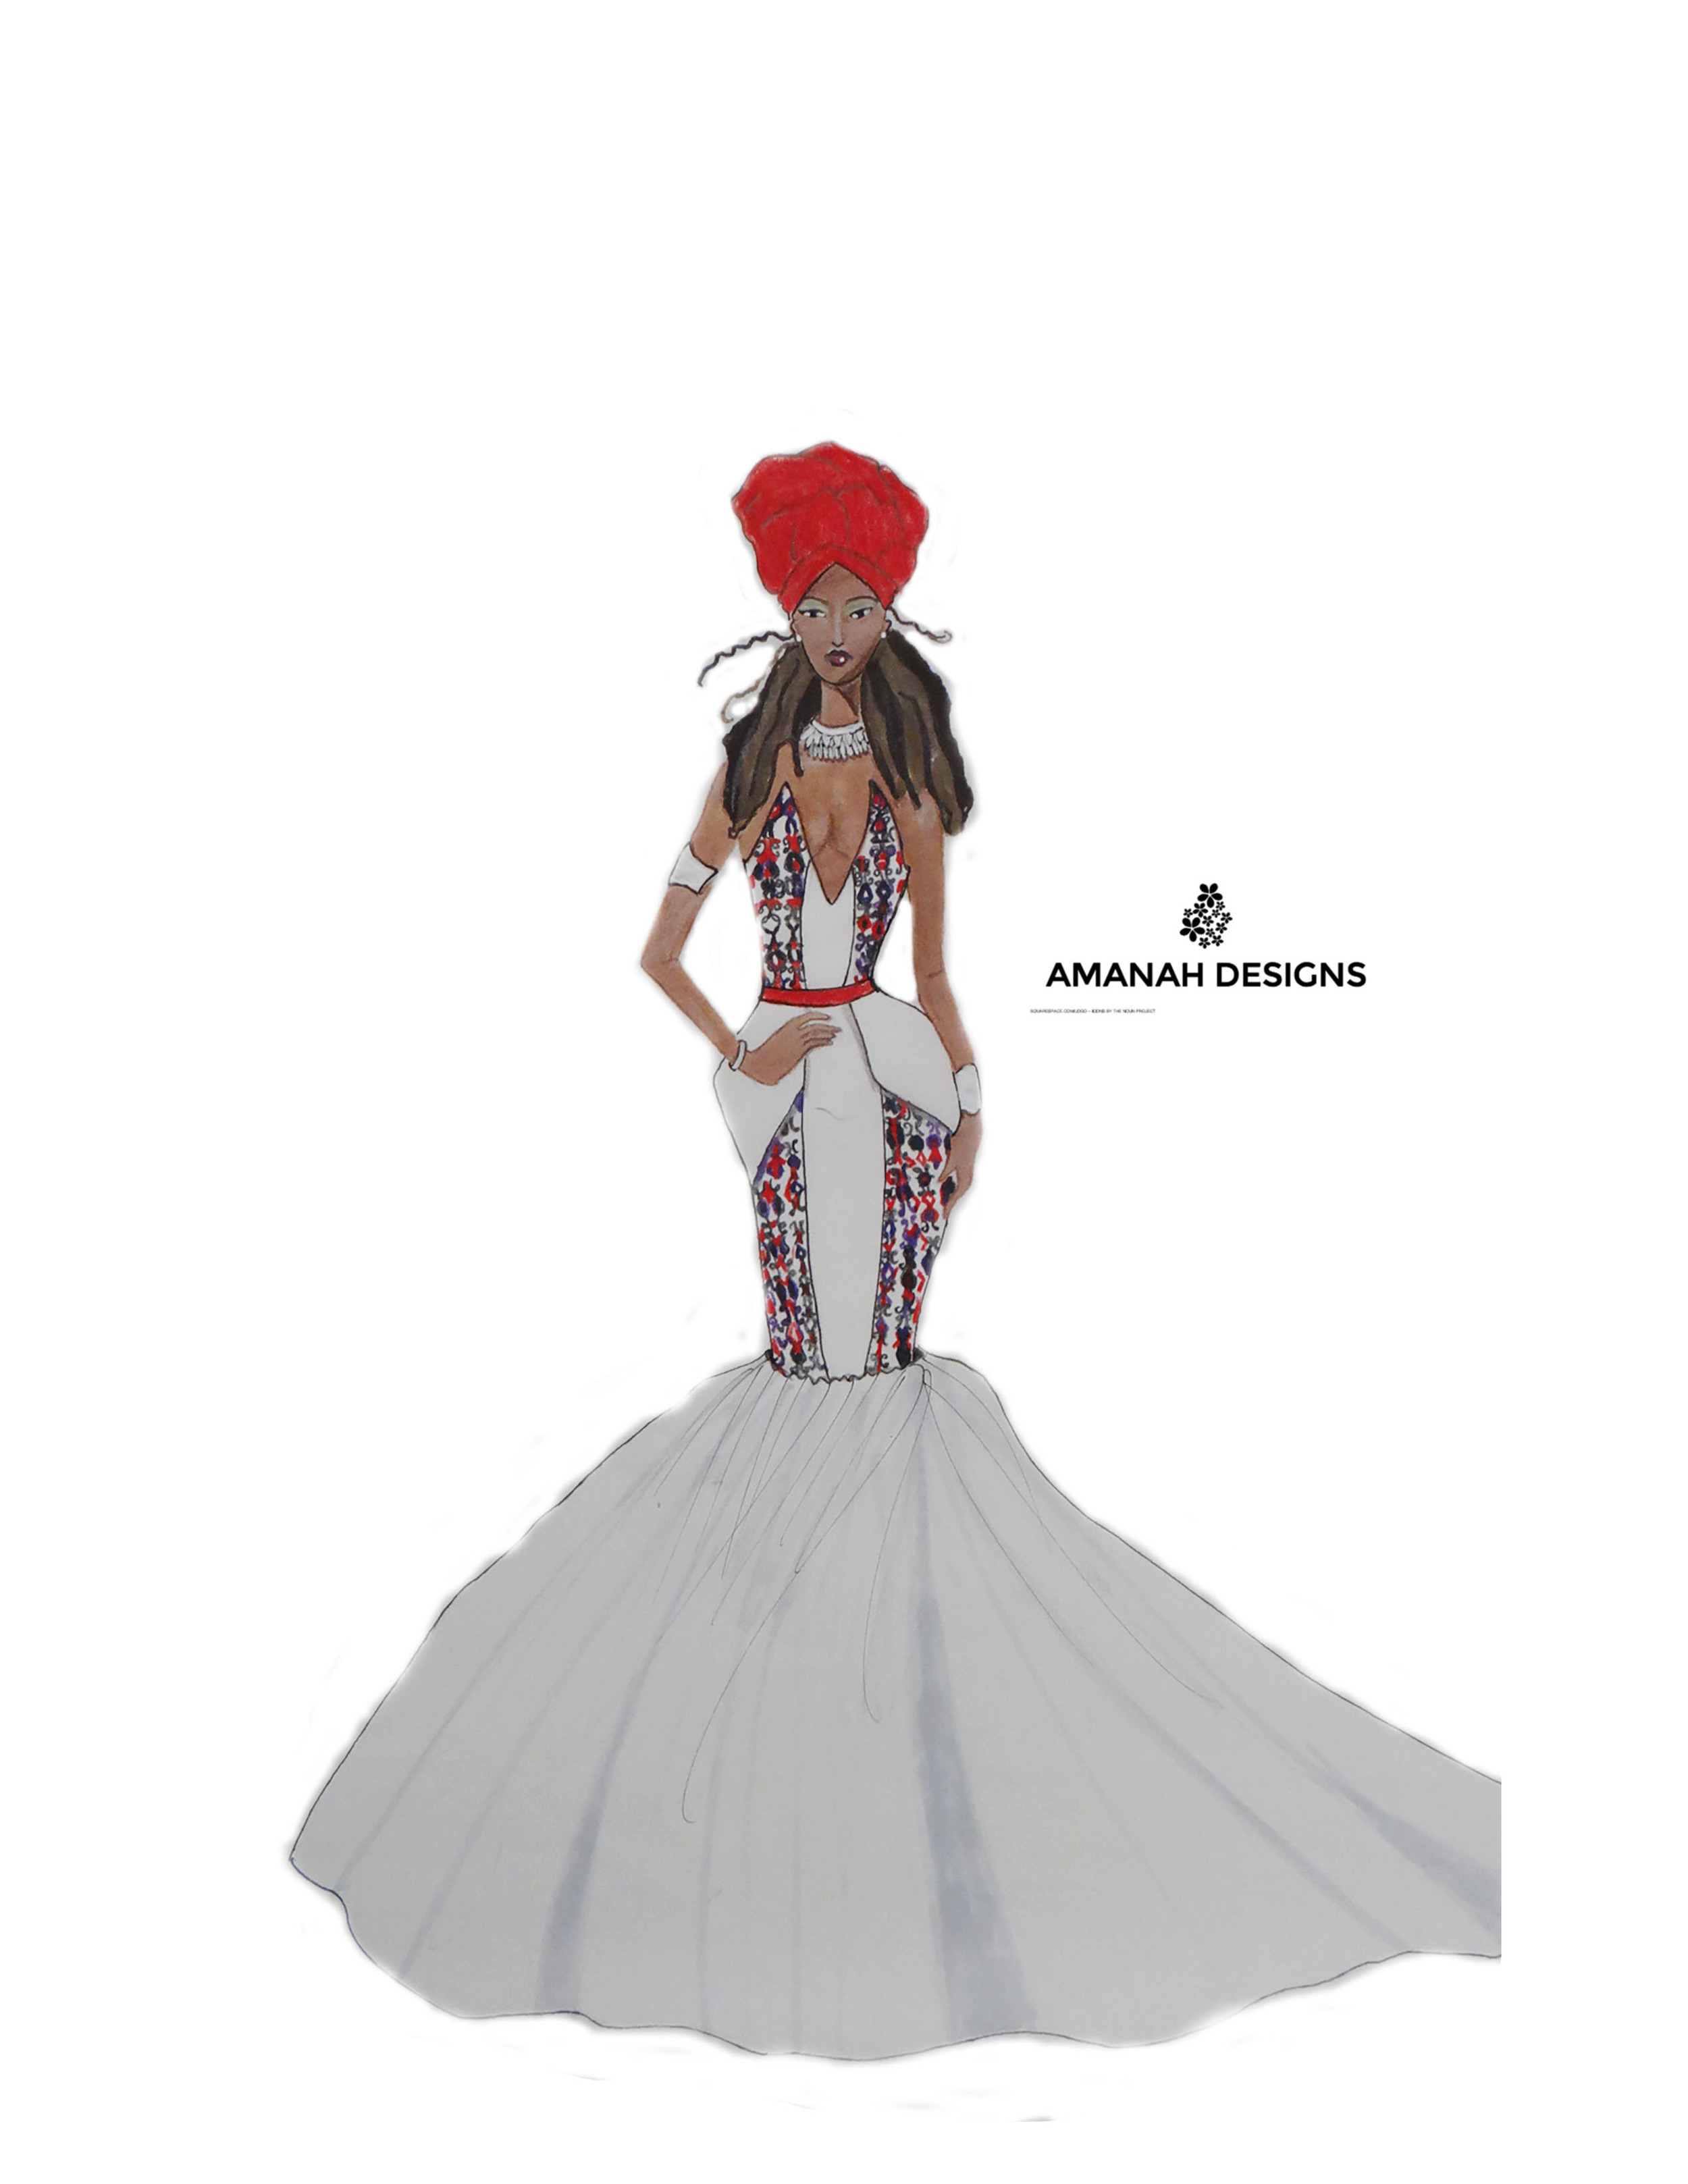 """African queen, wear your crown with pride.""  Style Description: Strictly african inspired evening dress with a head wrap."